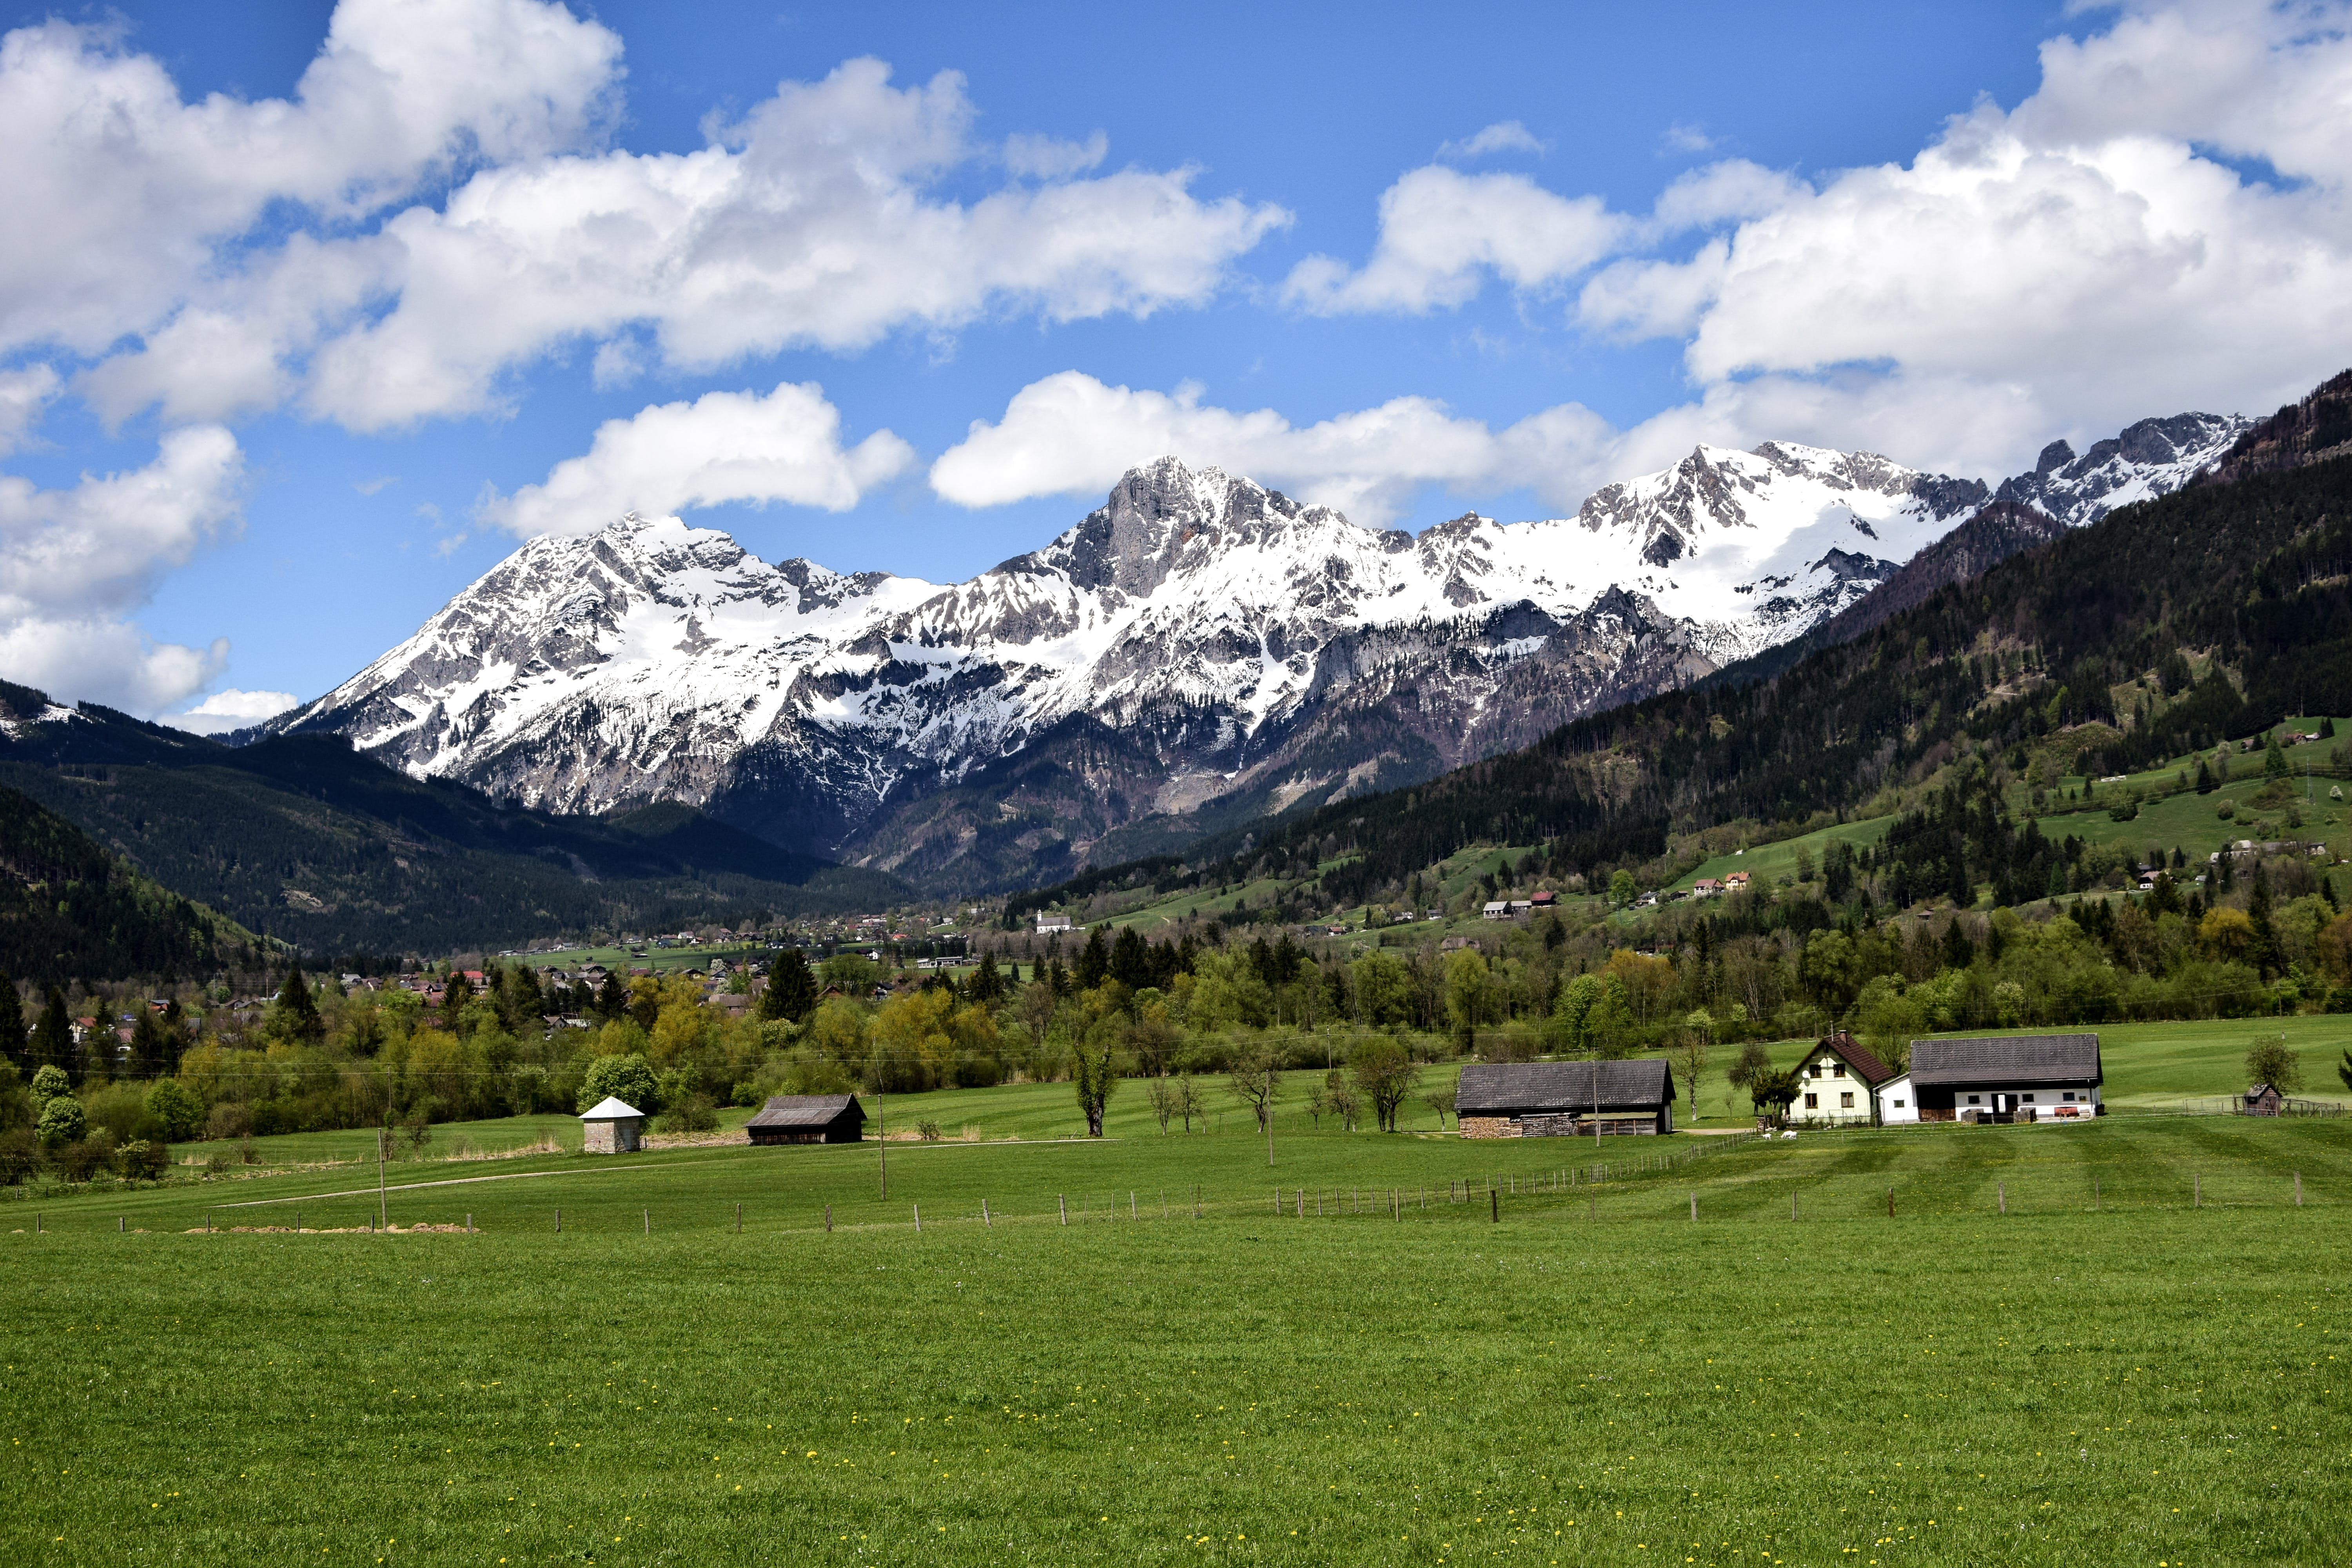 Landscape Photography of Green Grass Field Near Snow Capped Mountains